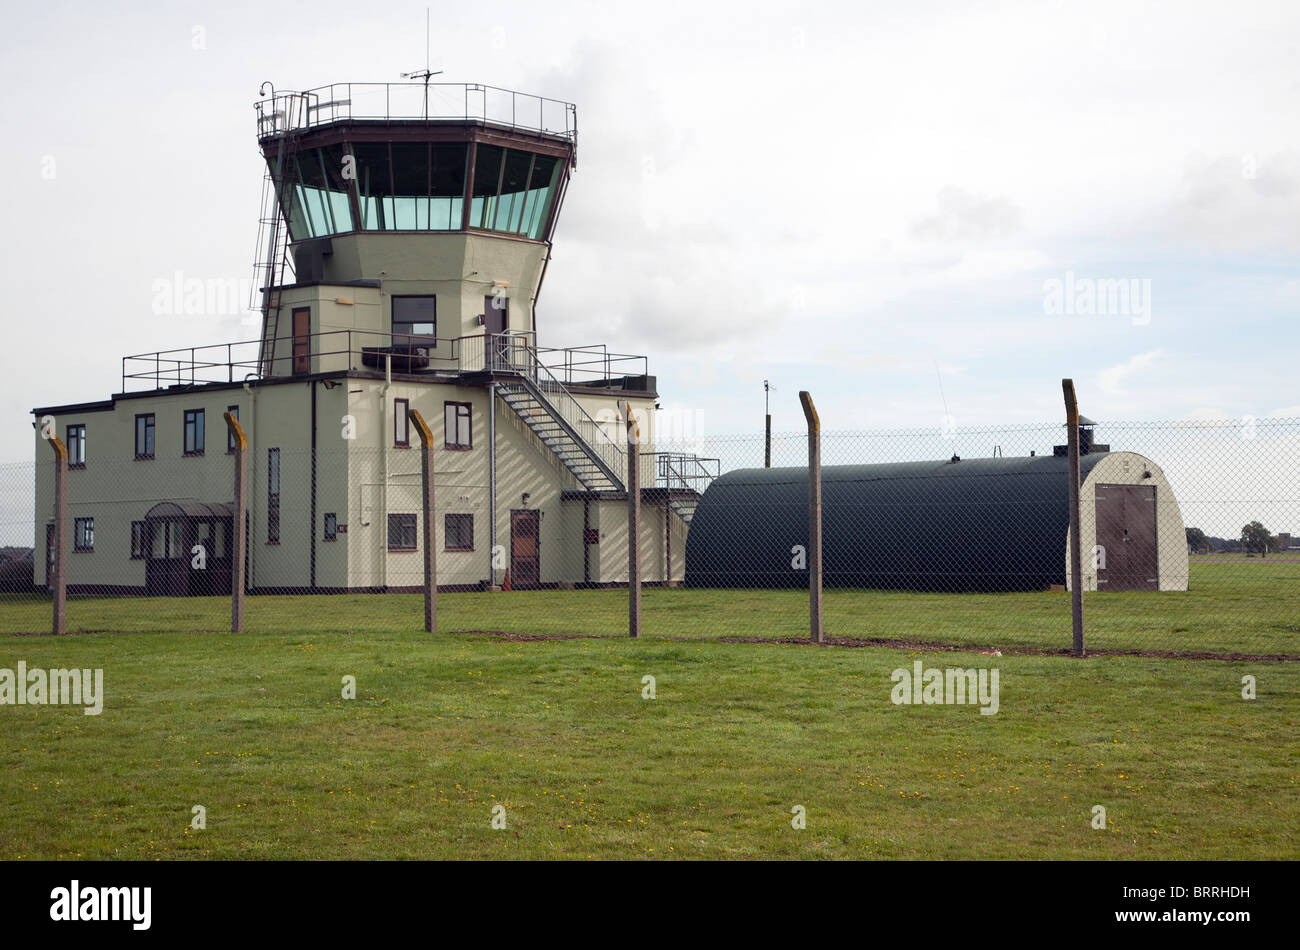 Control tower Former USAF RAF Bentwaters base, Suffolk, England - Stock Image